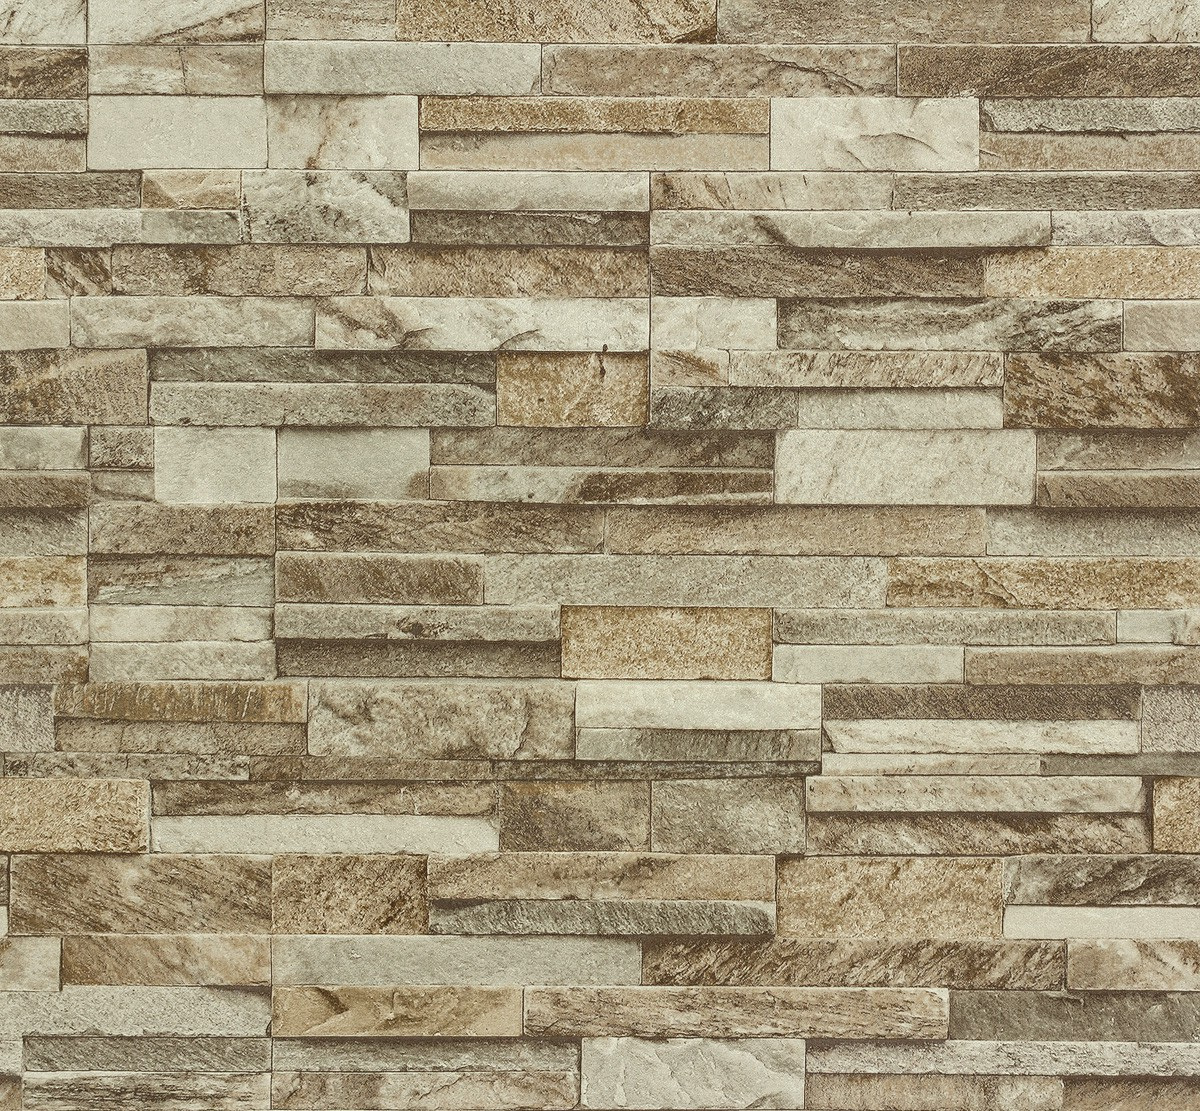 brick effect wallpaper vinyl 3d slate stone split face tile 2 colours p s ebay. Black Bedroom Furniture Sets. Home Design Ideas